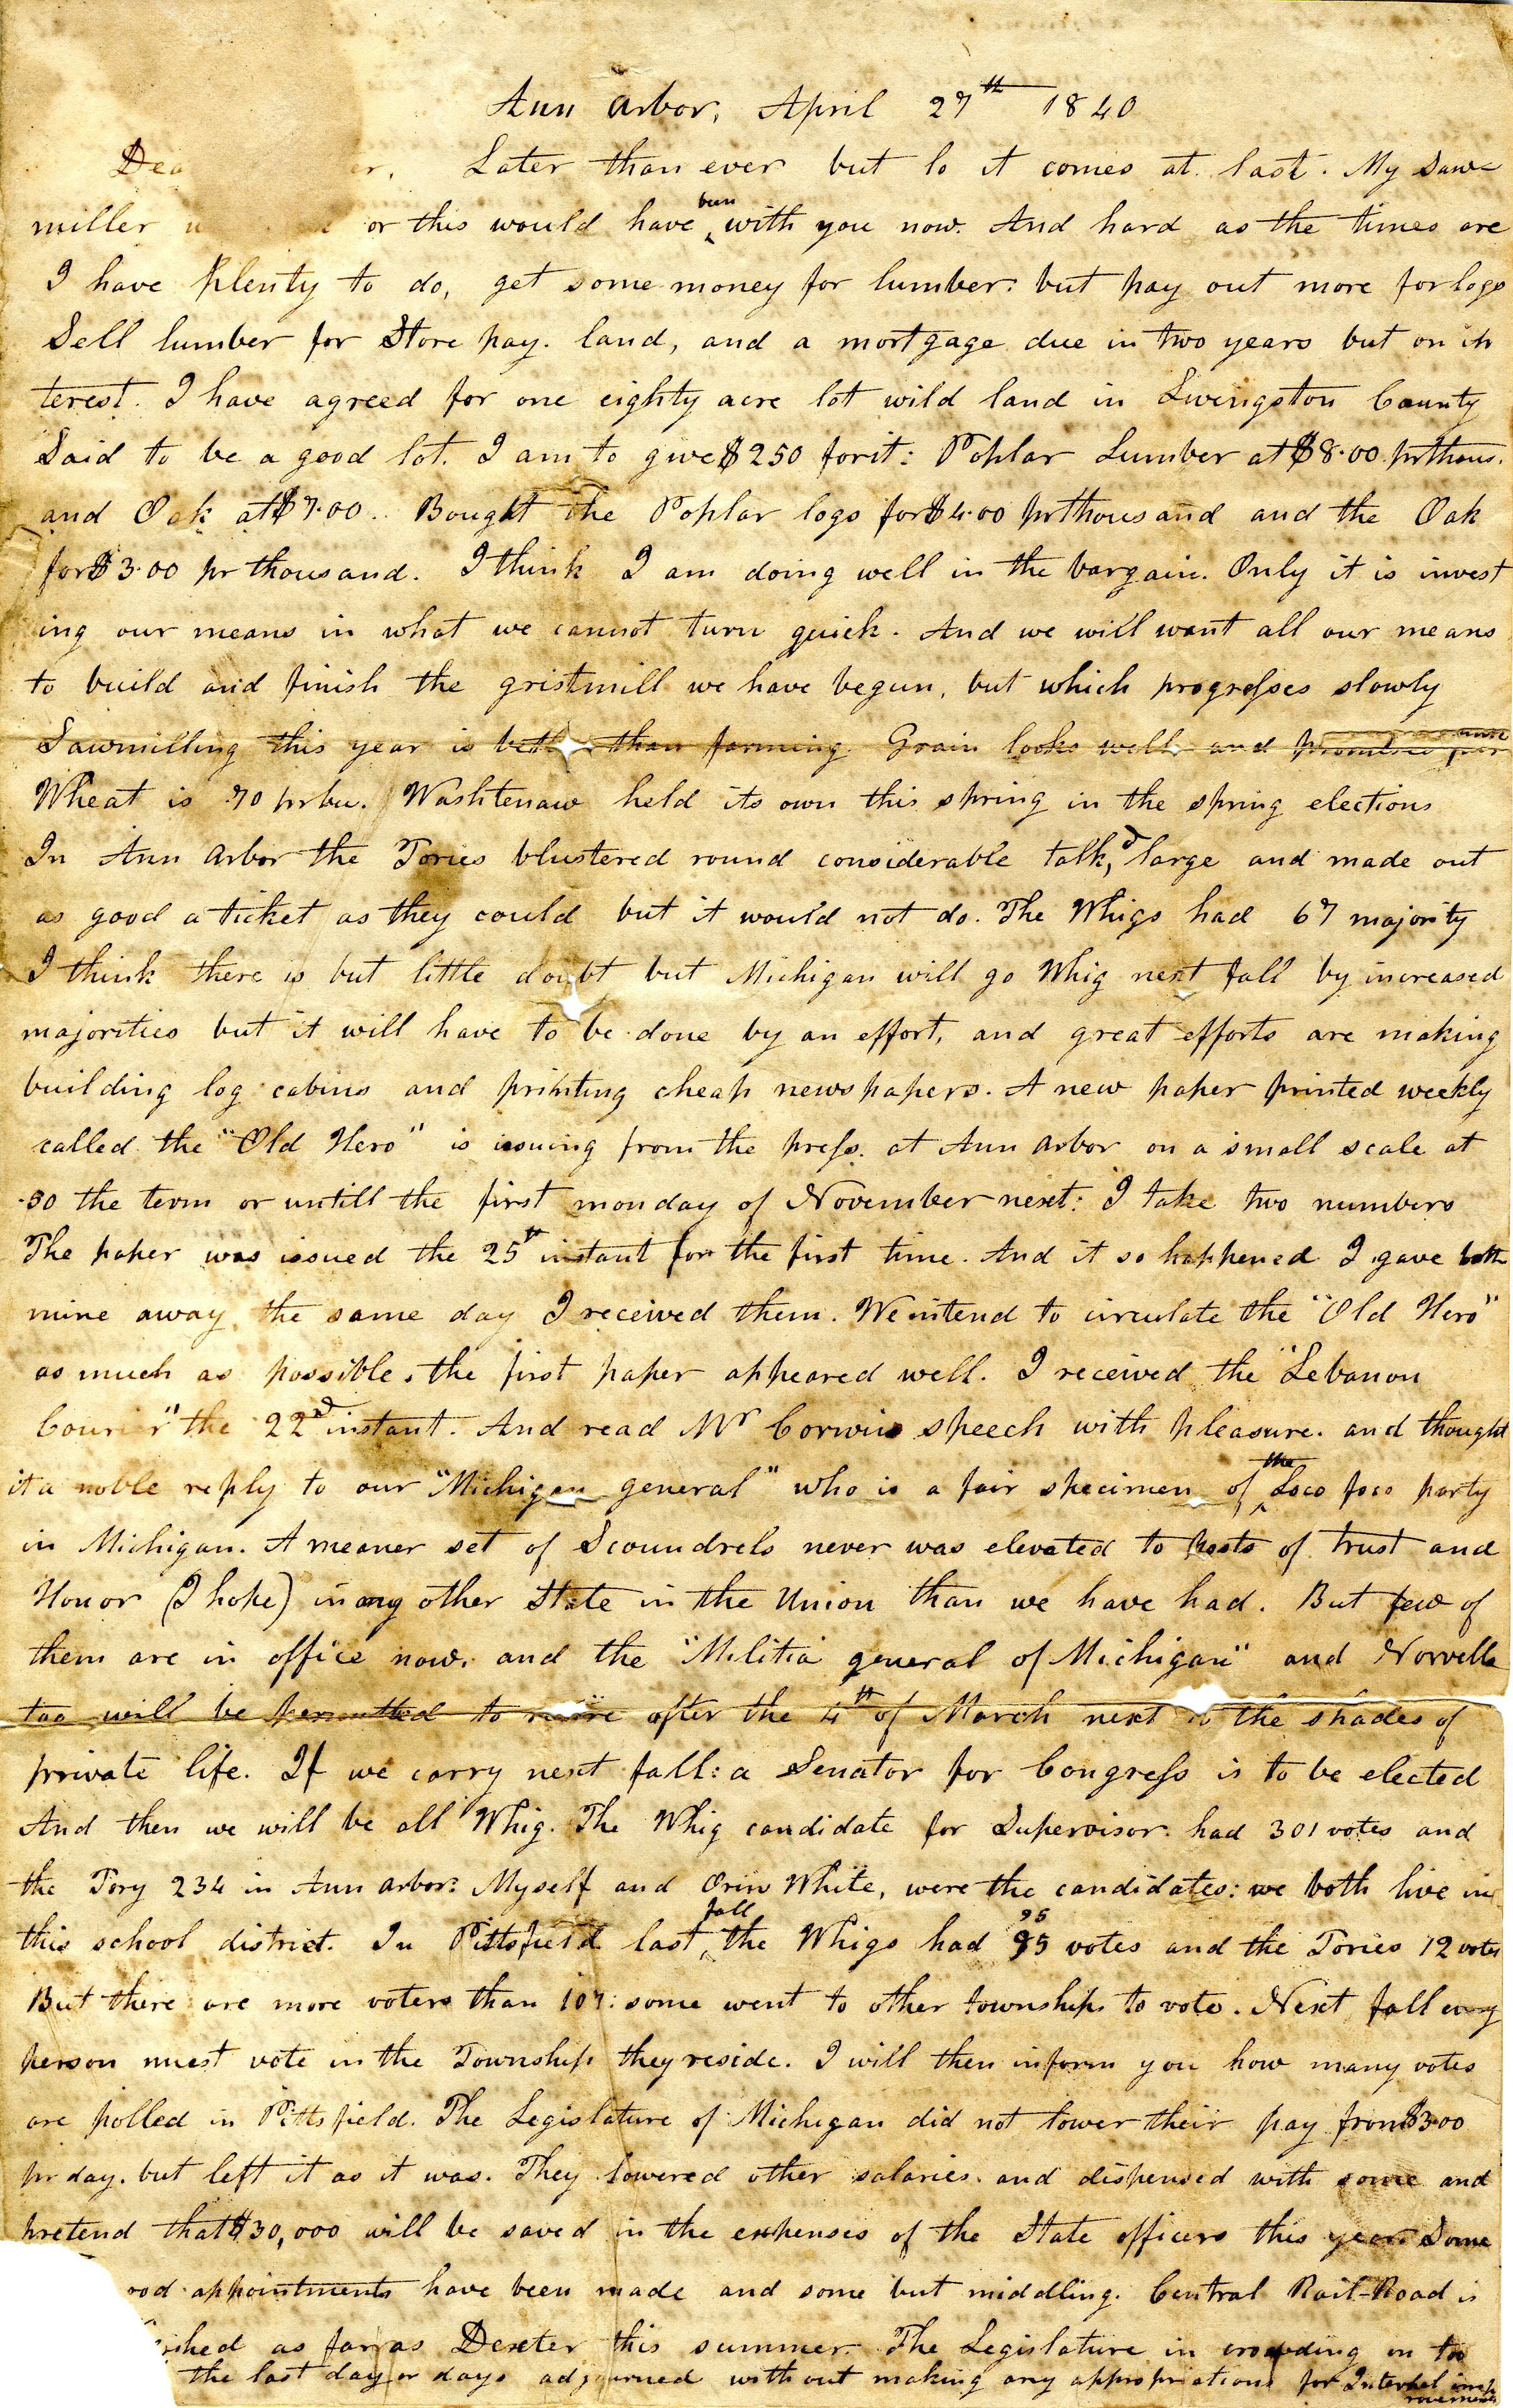 Letter From John Geddes to William Geddes, April 27, 1840 image